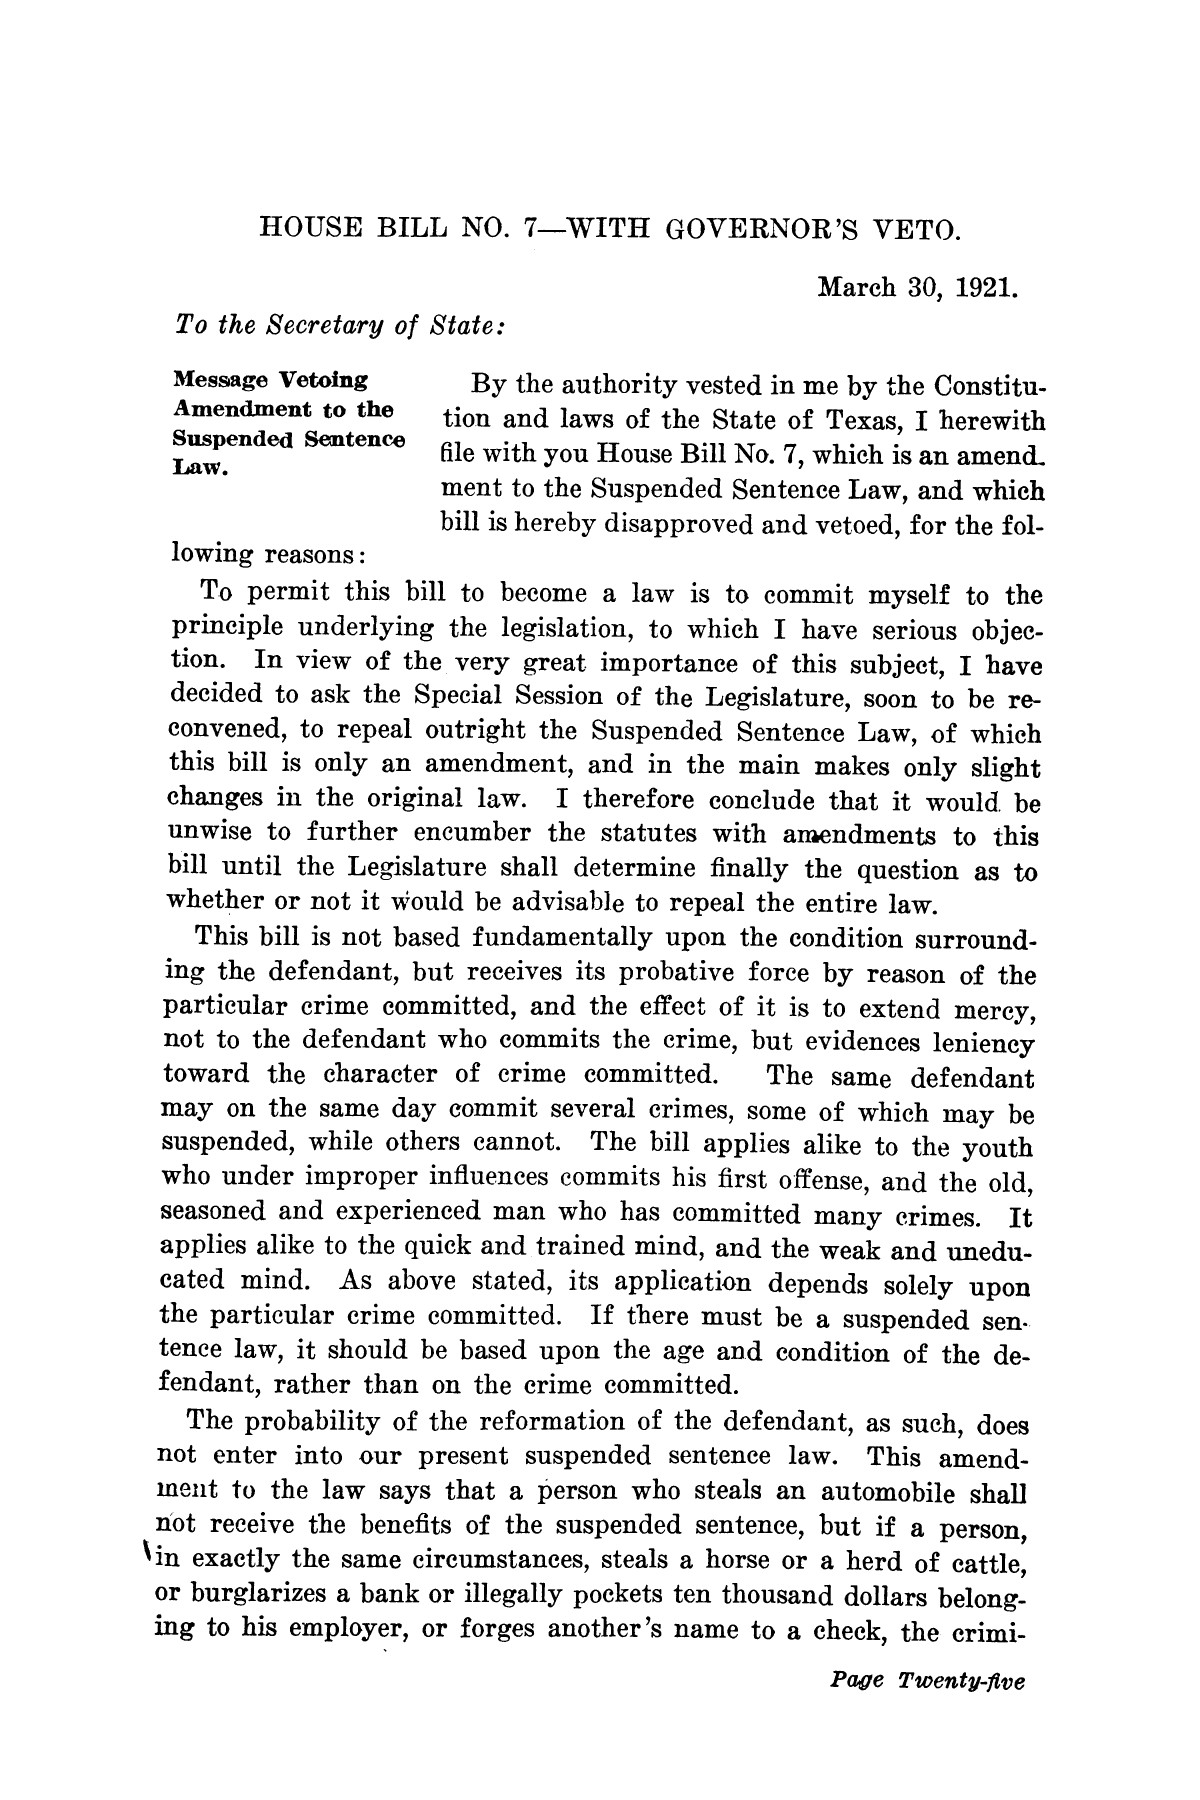 Messages of Pat M. Neff, Governor of Texas to the thirty-seventh legislature                                                                                                      [Sequence #]: 25 of 36